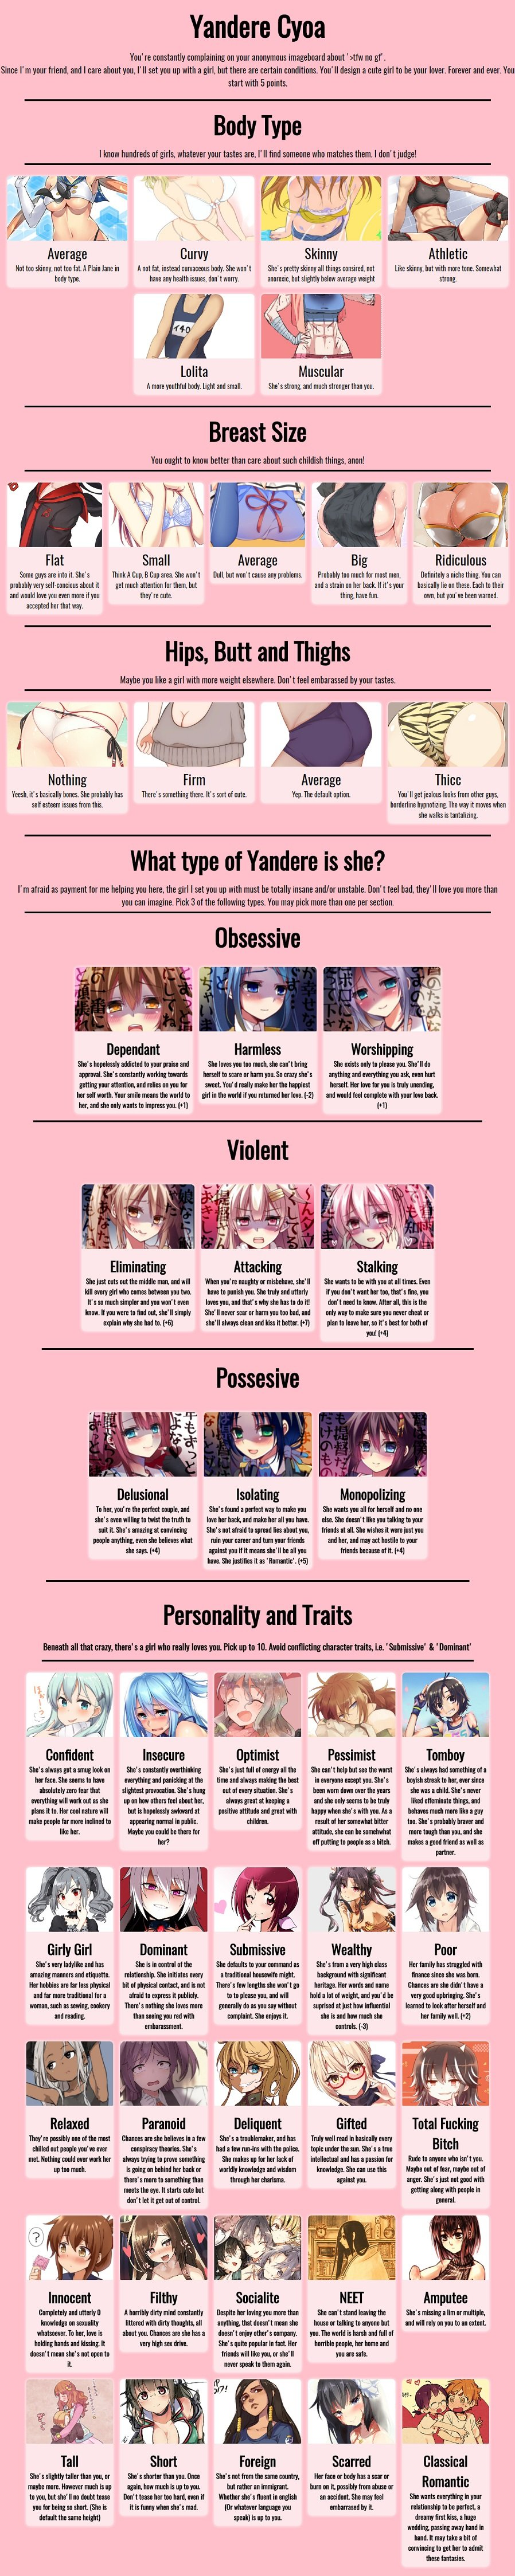 Yandere CYOA (original: https://8ch.net/cyoa/res/2537.html)